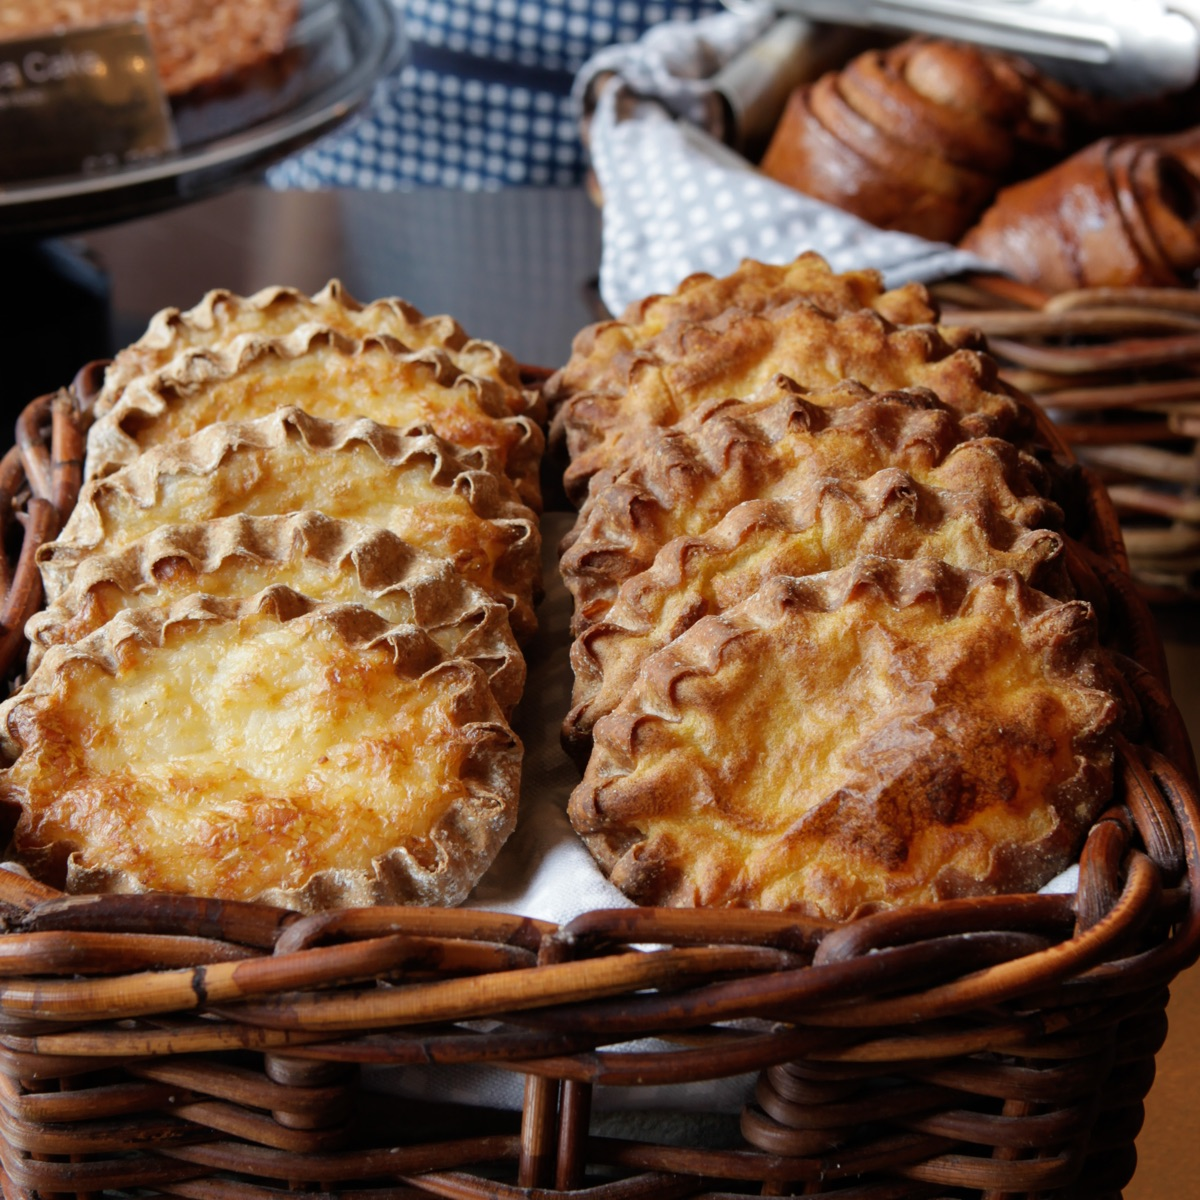 Karelian pies from Nordic Bakery in London. A delicious rye-crusted savoury snack, the Karelian pie is made with rice or potato mash filling and served with egg-butter spread. Image courtesy of Nordic Bakery.